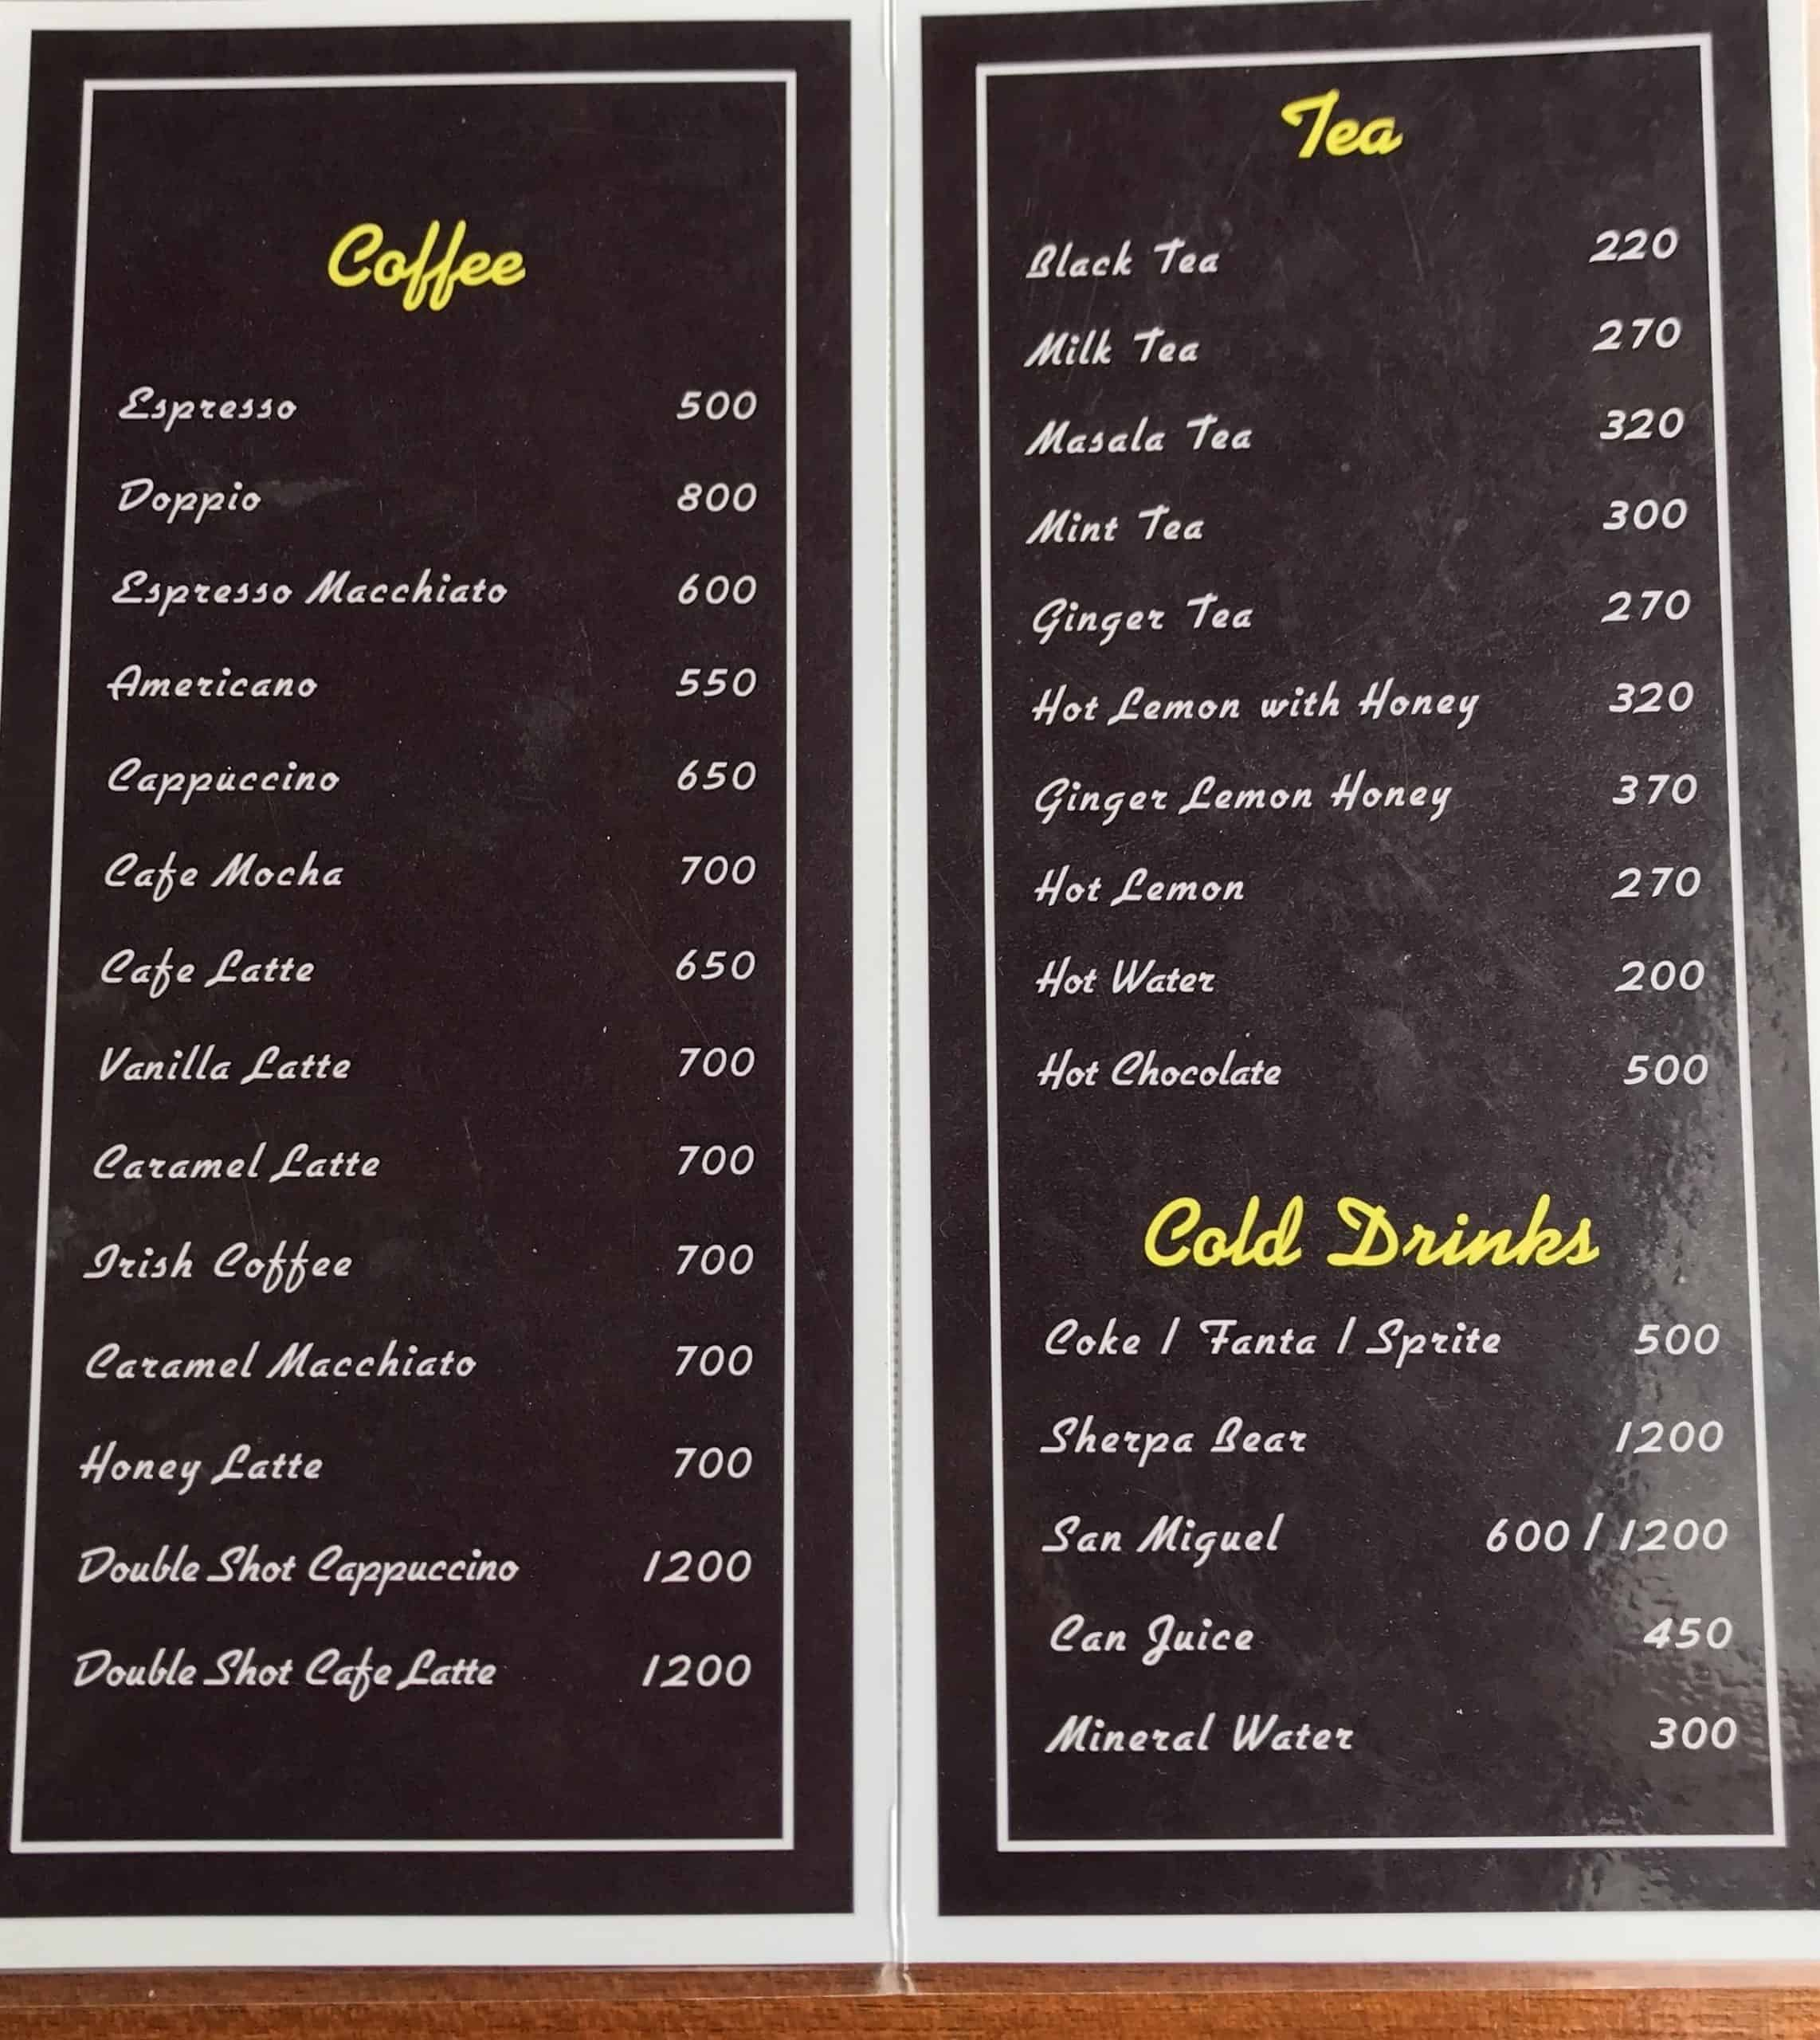 Drink Menu at World's Highest Bakery Cafe at Lobuche